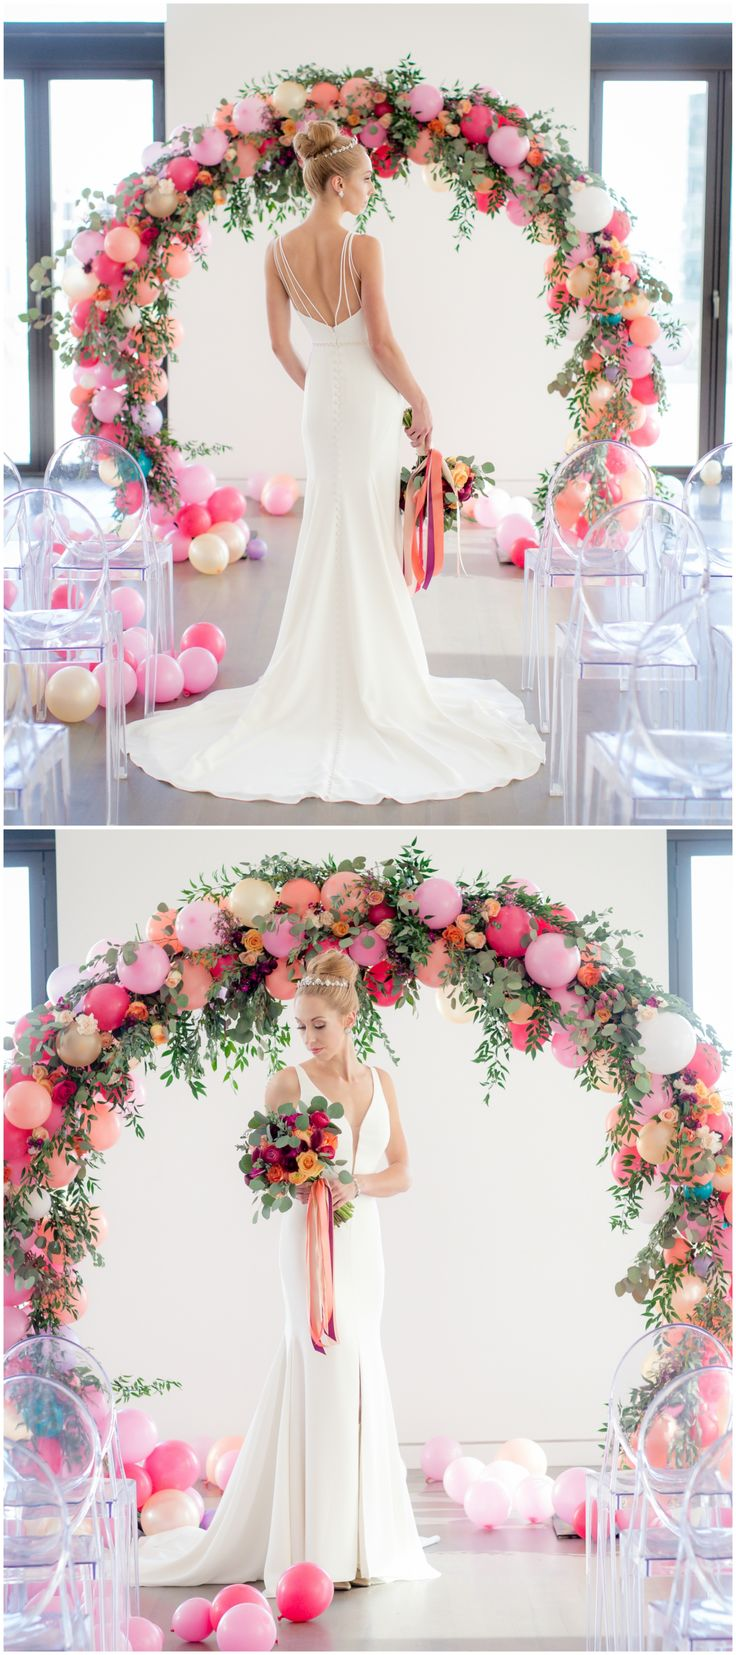 Modern wedding dress, sexy and elegant, plunging neckline, balloon arch // Andrea DeLong Photography